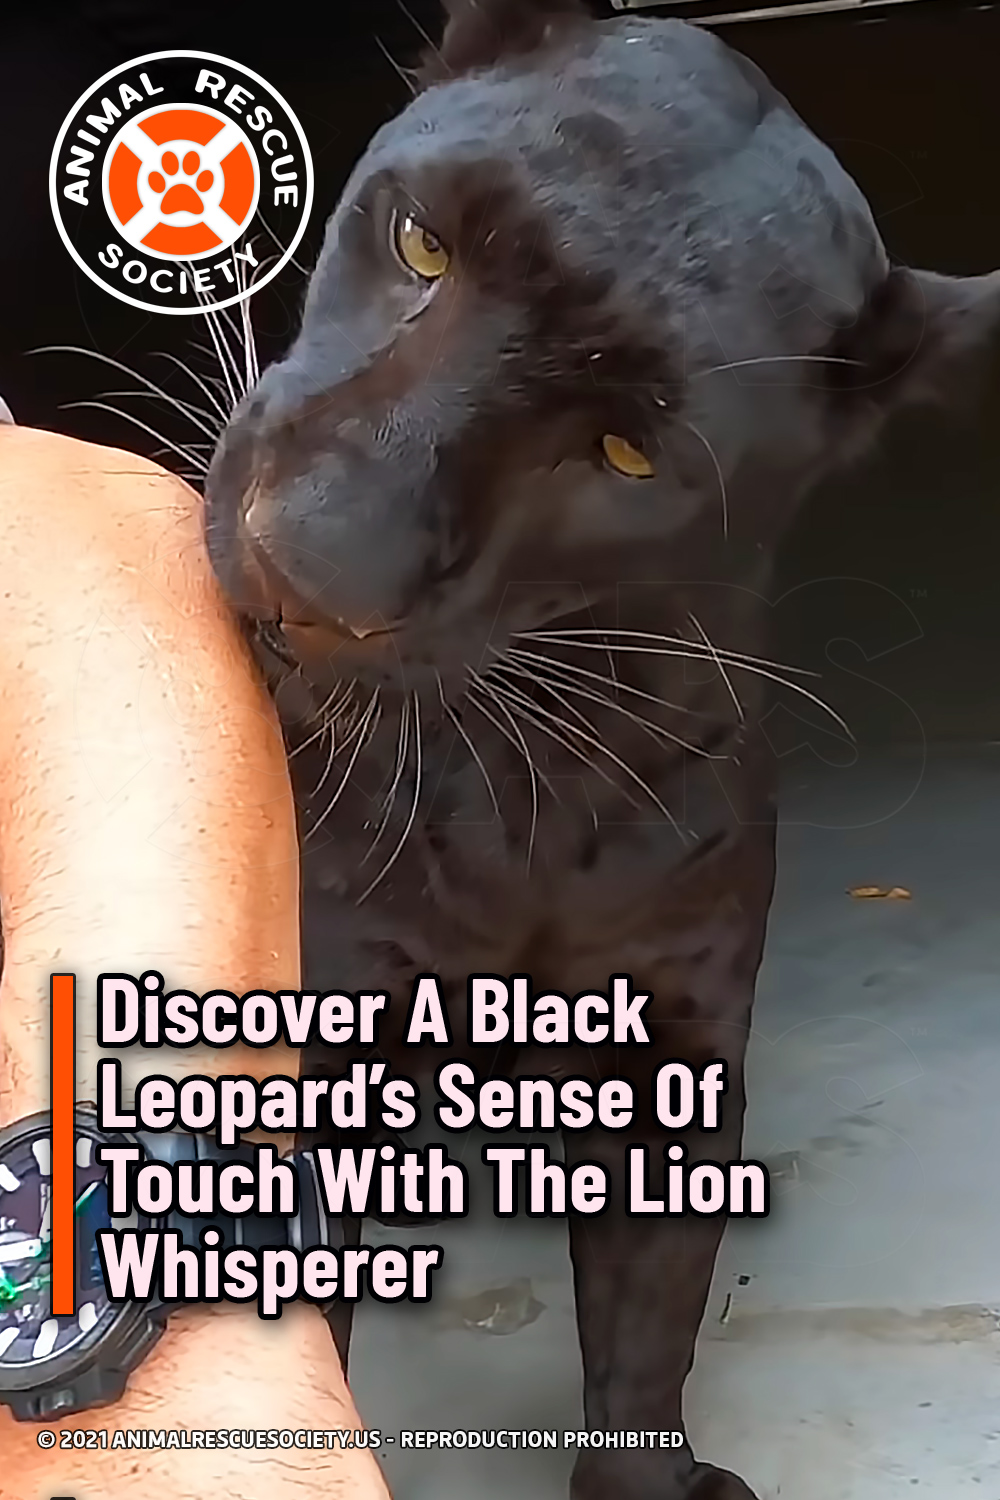 Discover A Black Leopard's Sense Of Touch With The Lion Whisperer